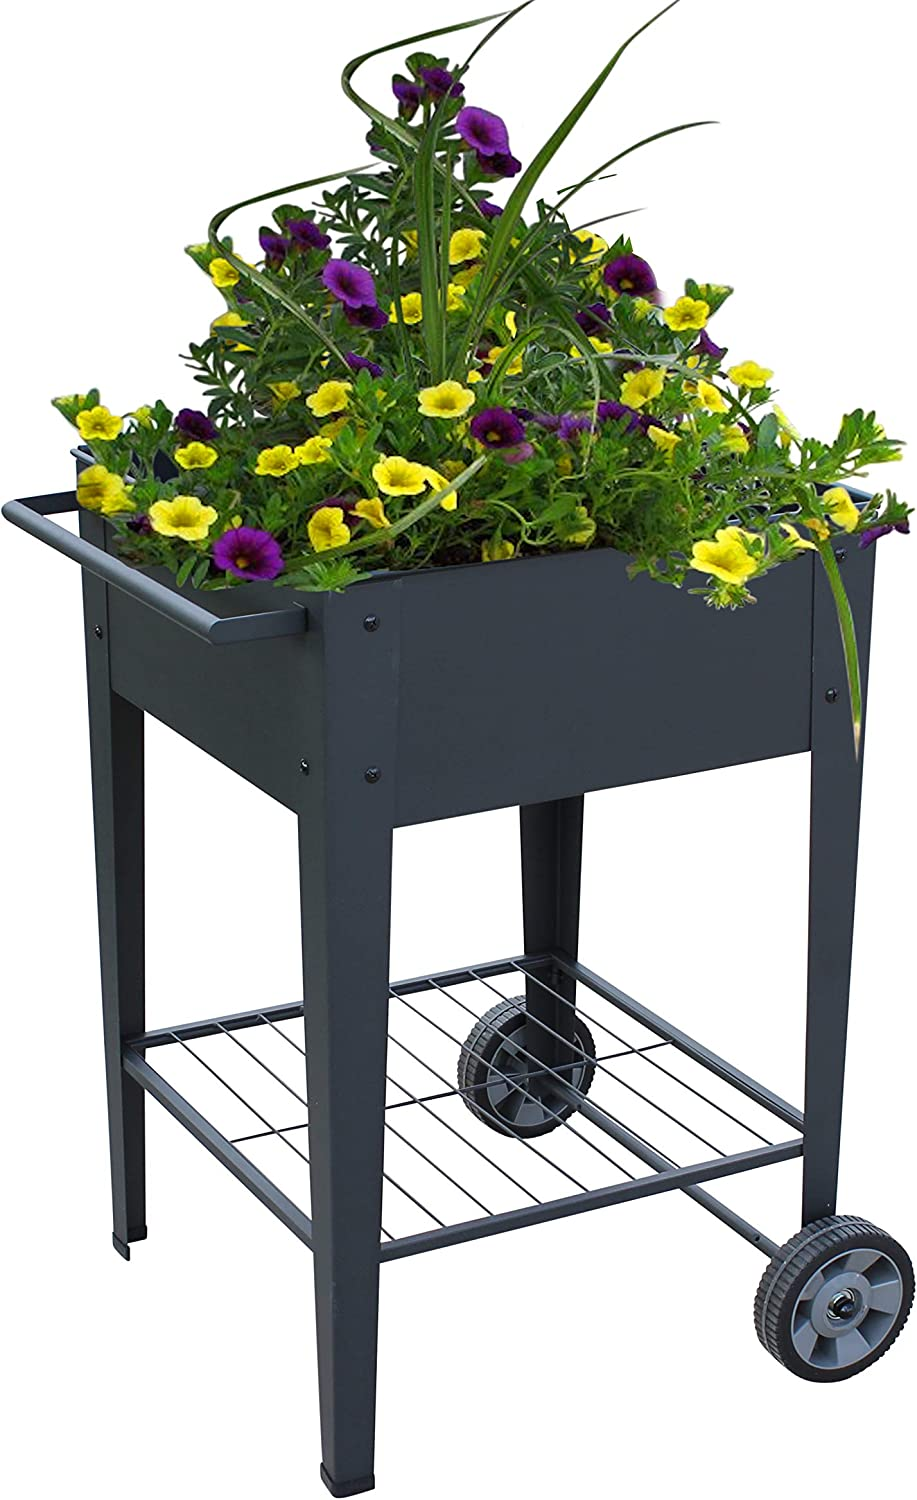 Garraí Mobile Raised Planter Box -Garden Cart with Wheels, Movable Square Outdoor Elevated Garden Bed - Grow Vegetables Flowers Herbs on Patio, Deck, or Yard.